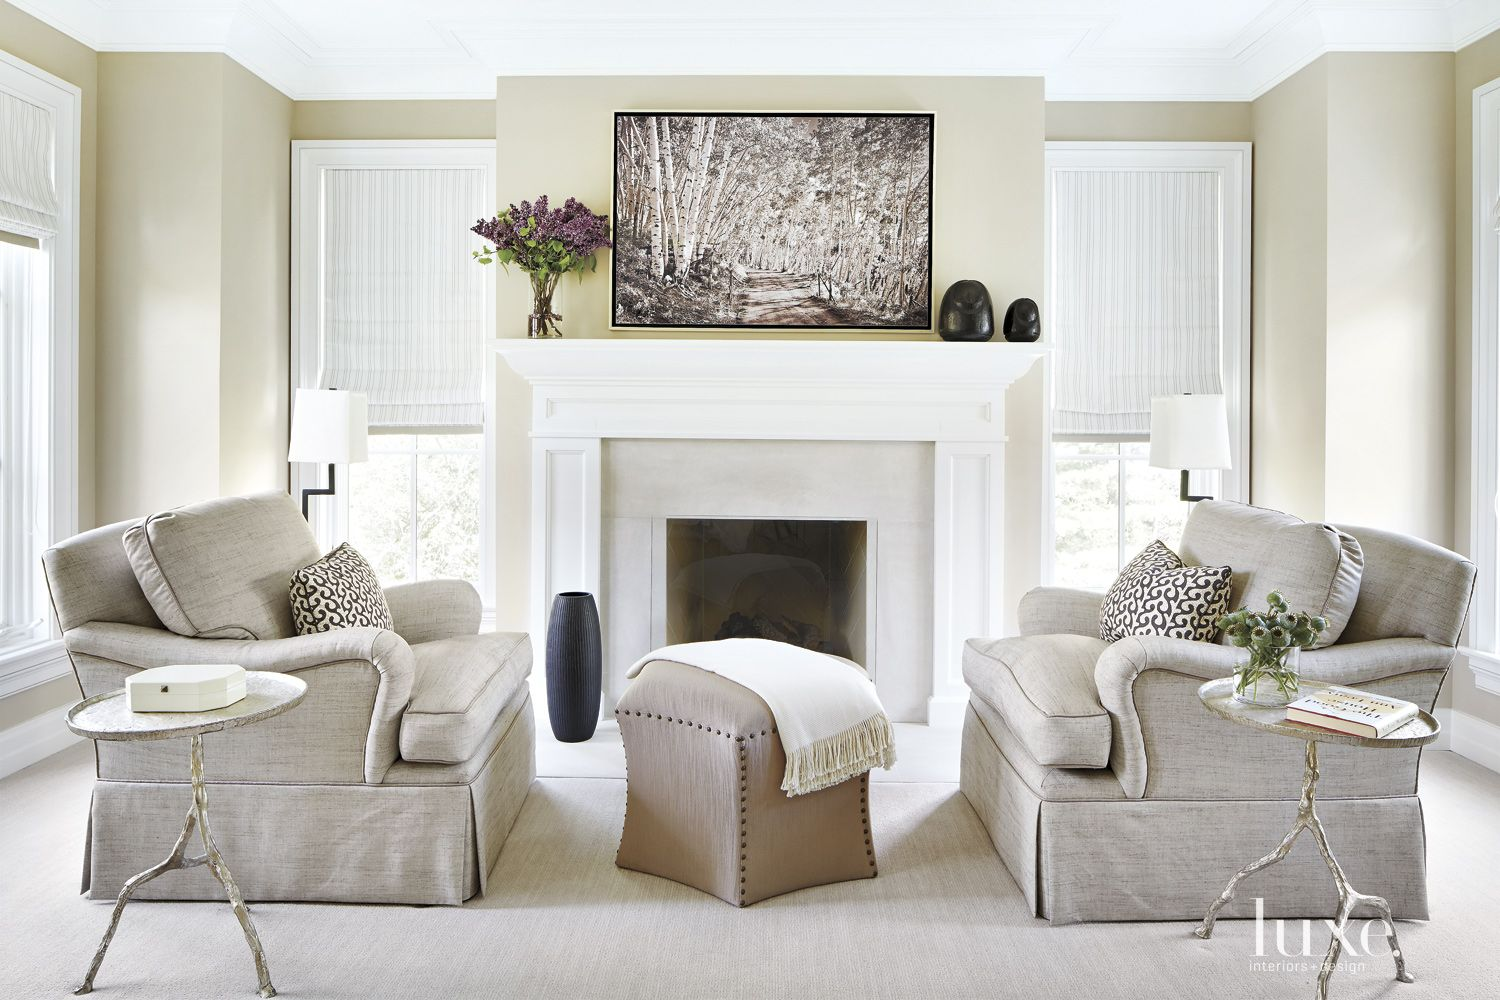 Traditional Neutral Sitting Area with Elegant Fireplace Mantel